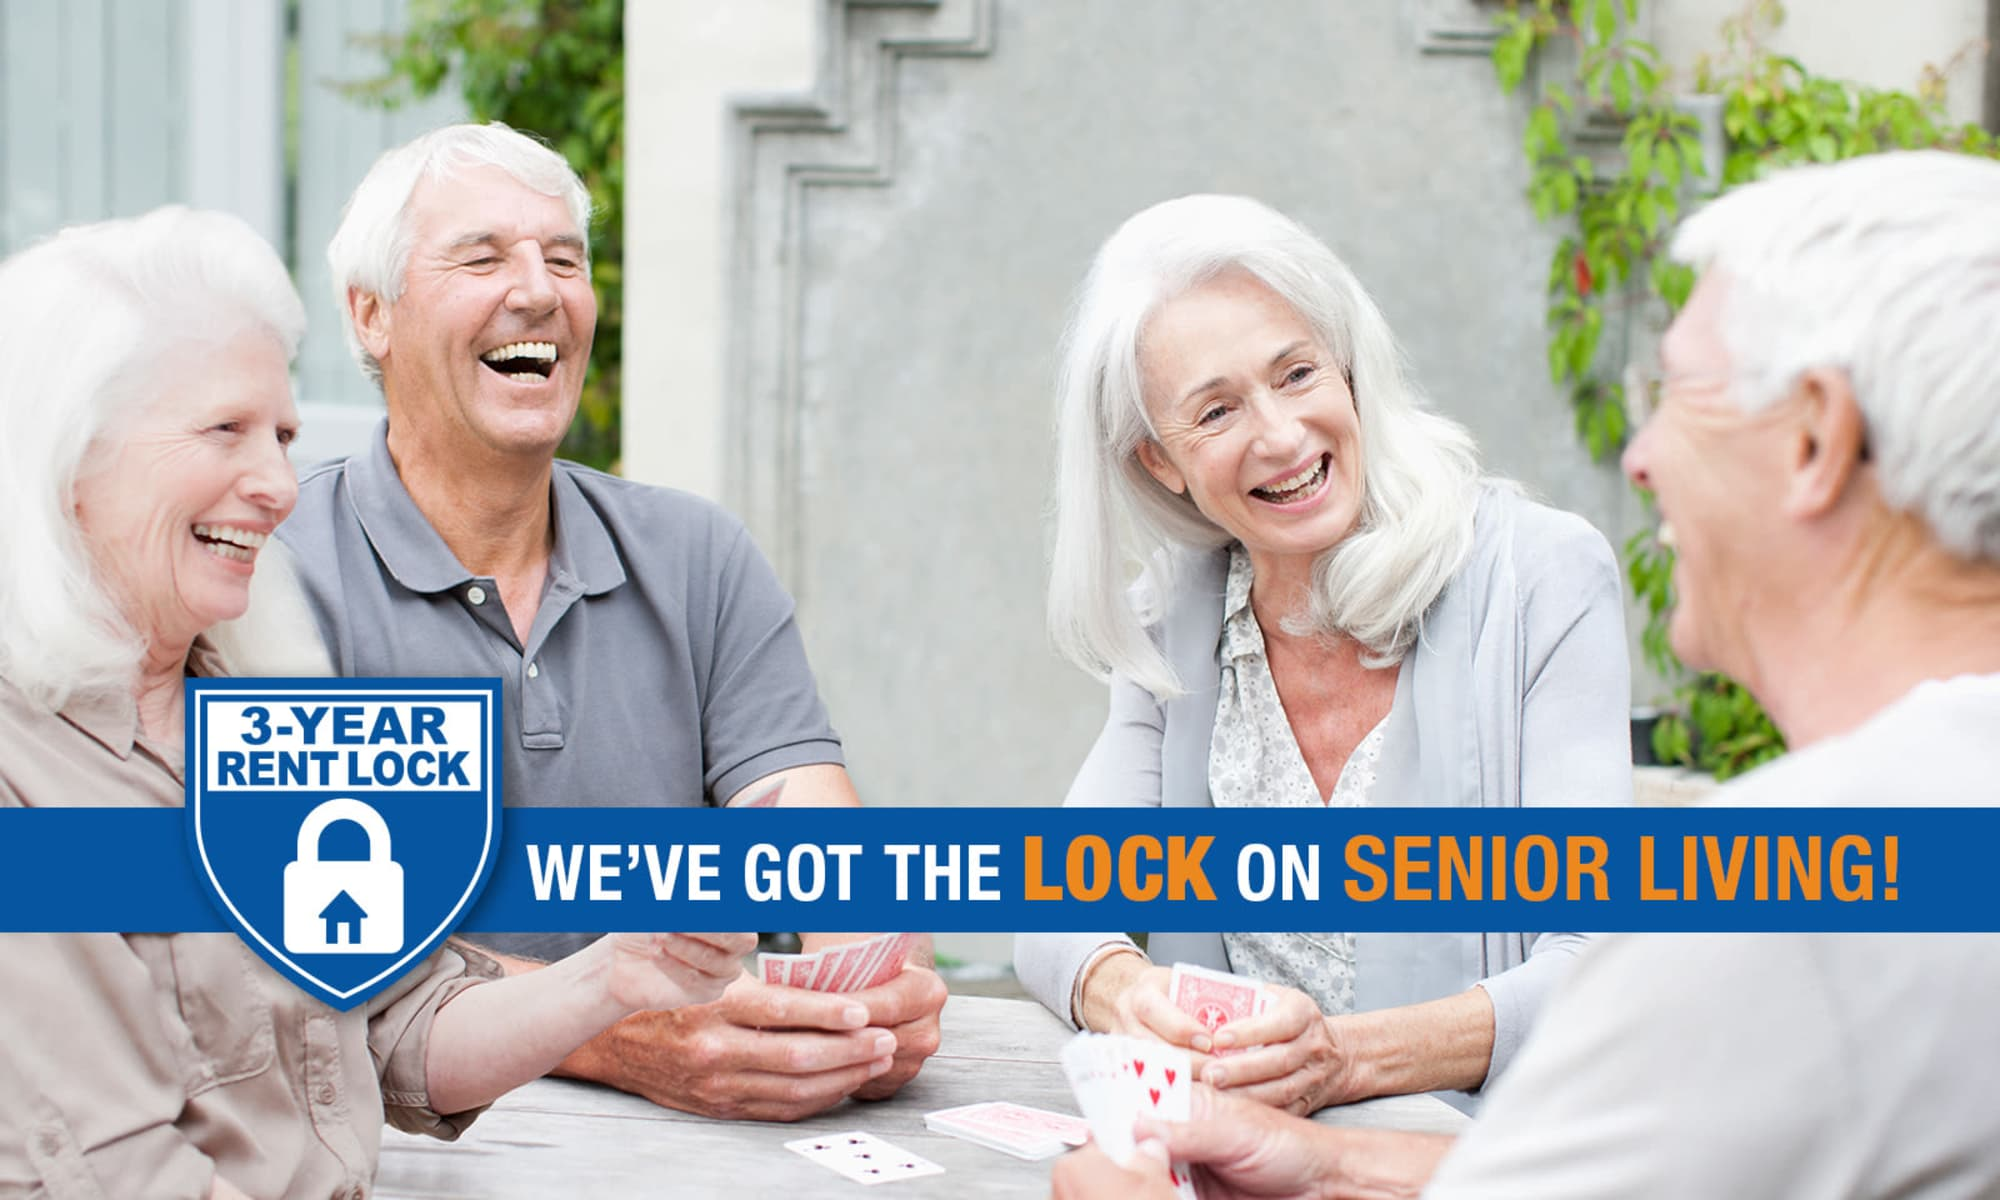 Senior living in palm beach gardens fl discovery - Palm beach gardens community center ...